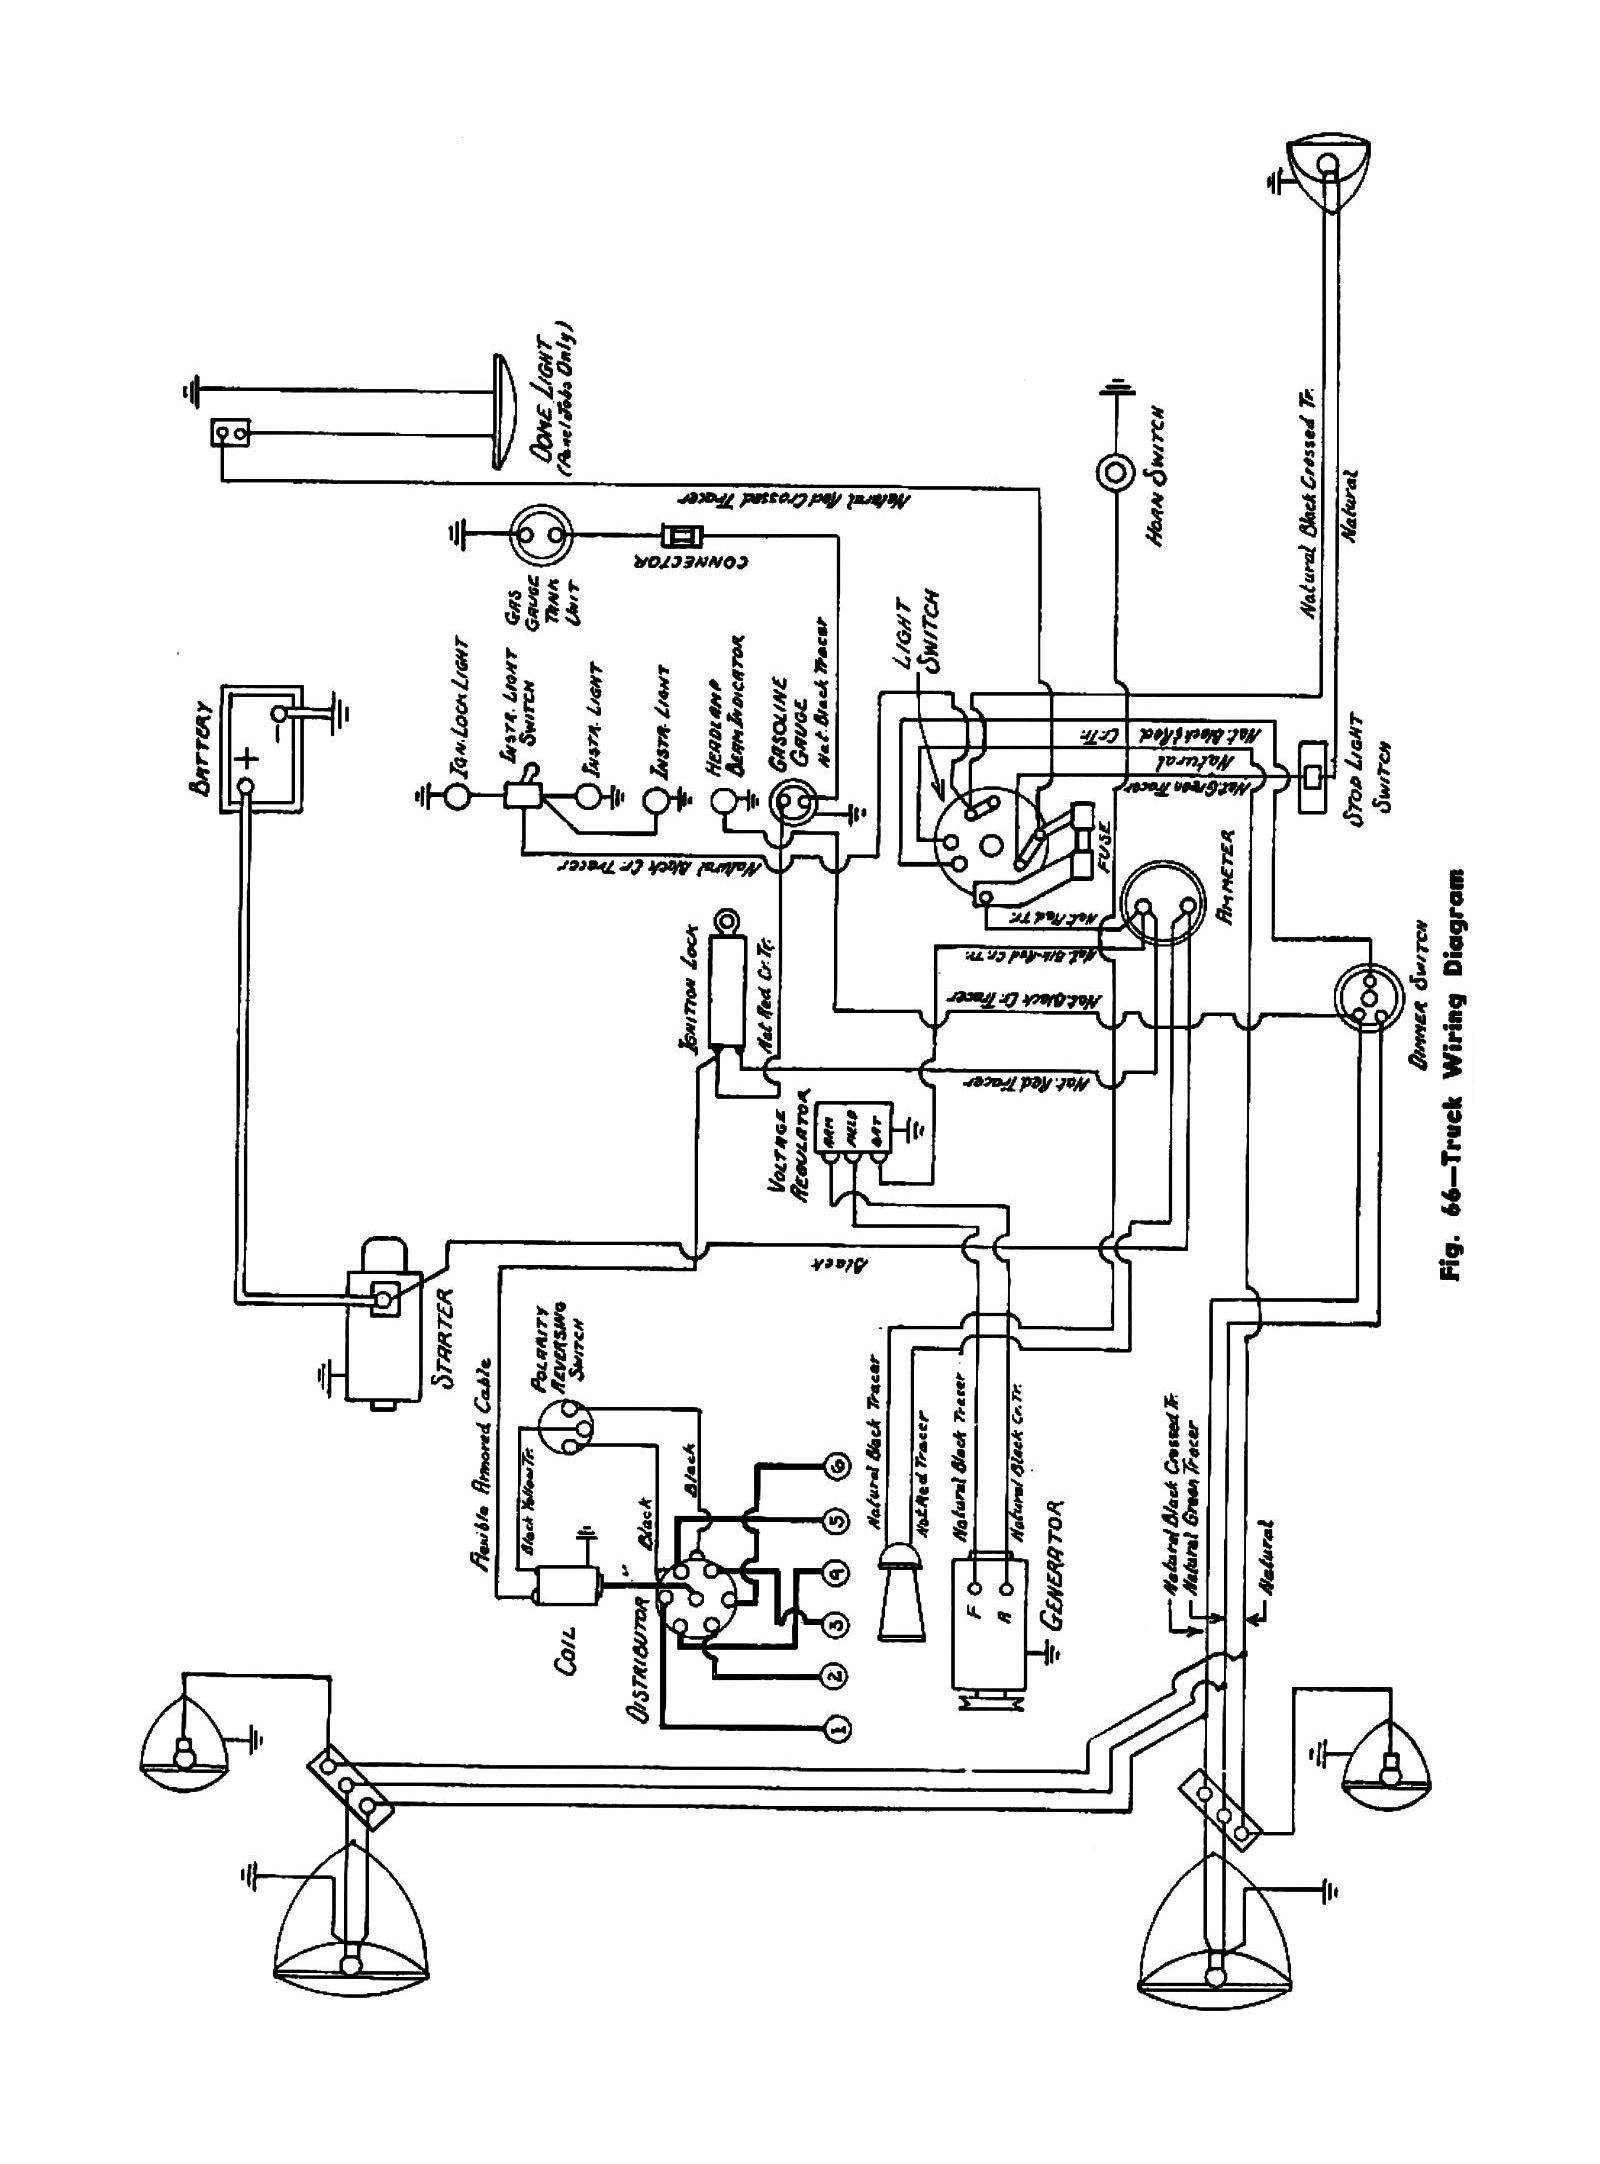 79 Chevy Truck Wiring Diagram on new holland ac wiring diagram